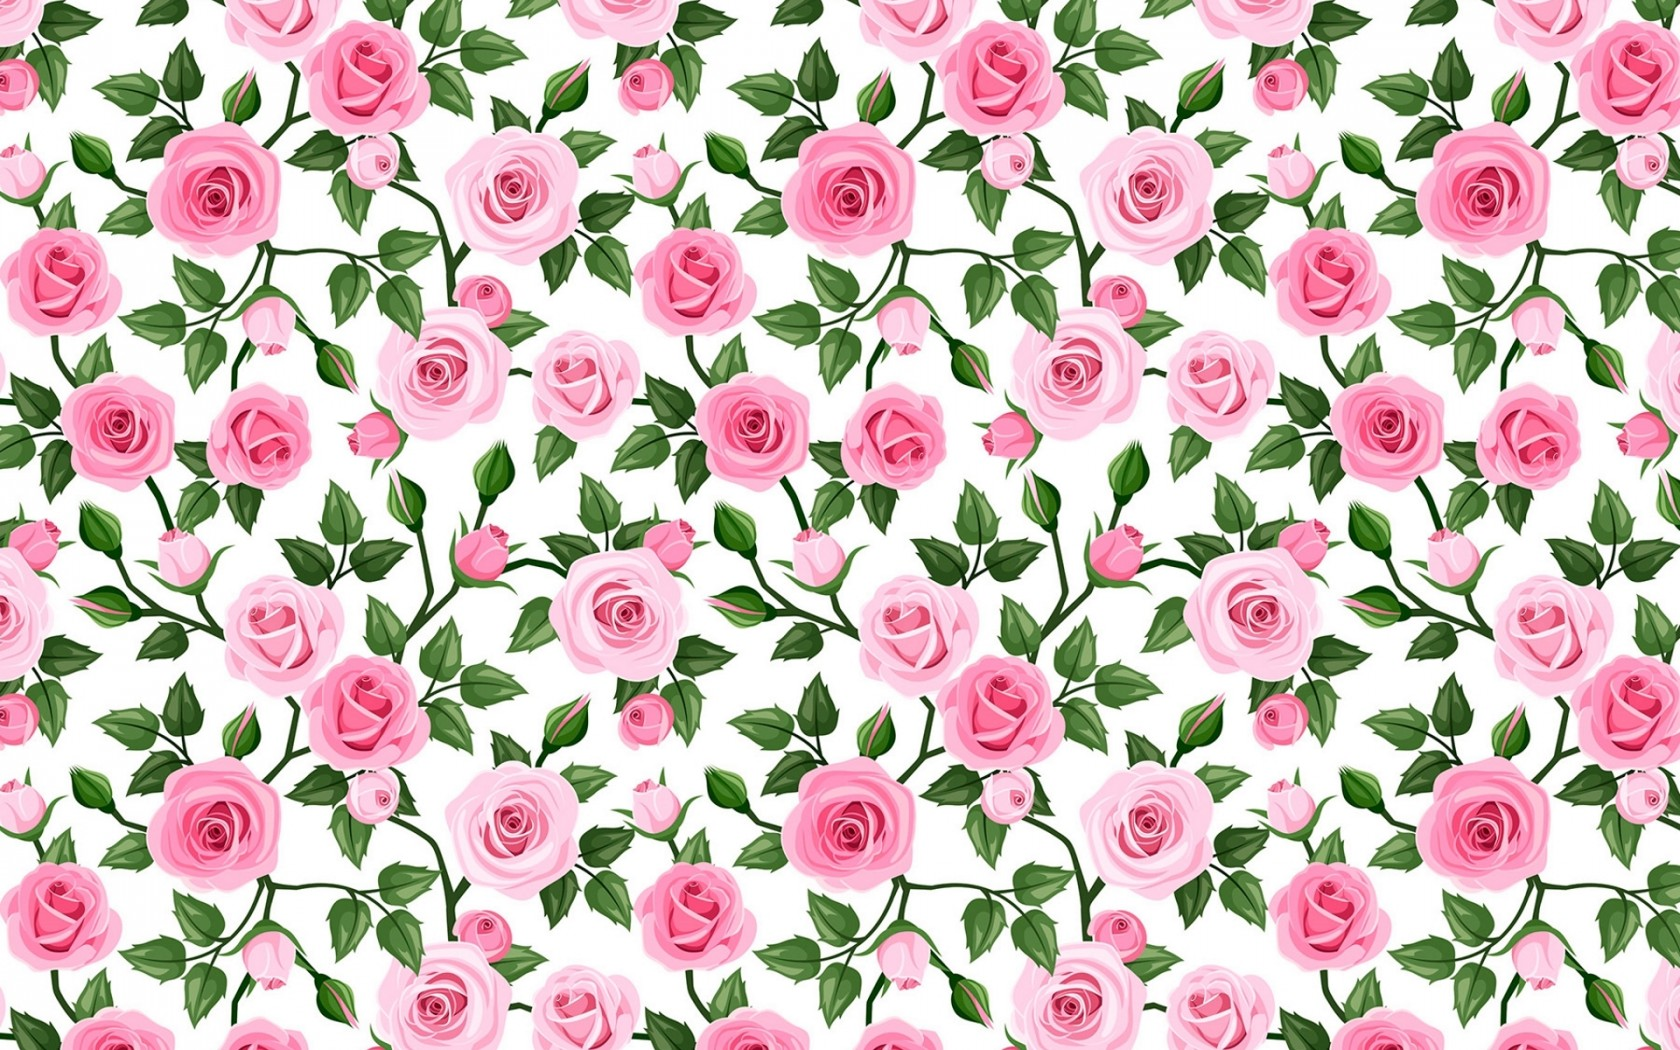 Image Soft Pink Roses Pattern Wallpapers And Stock Photos